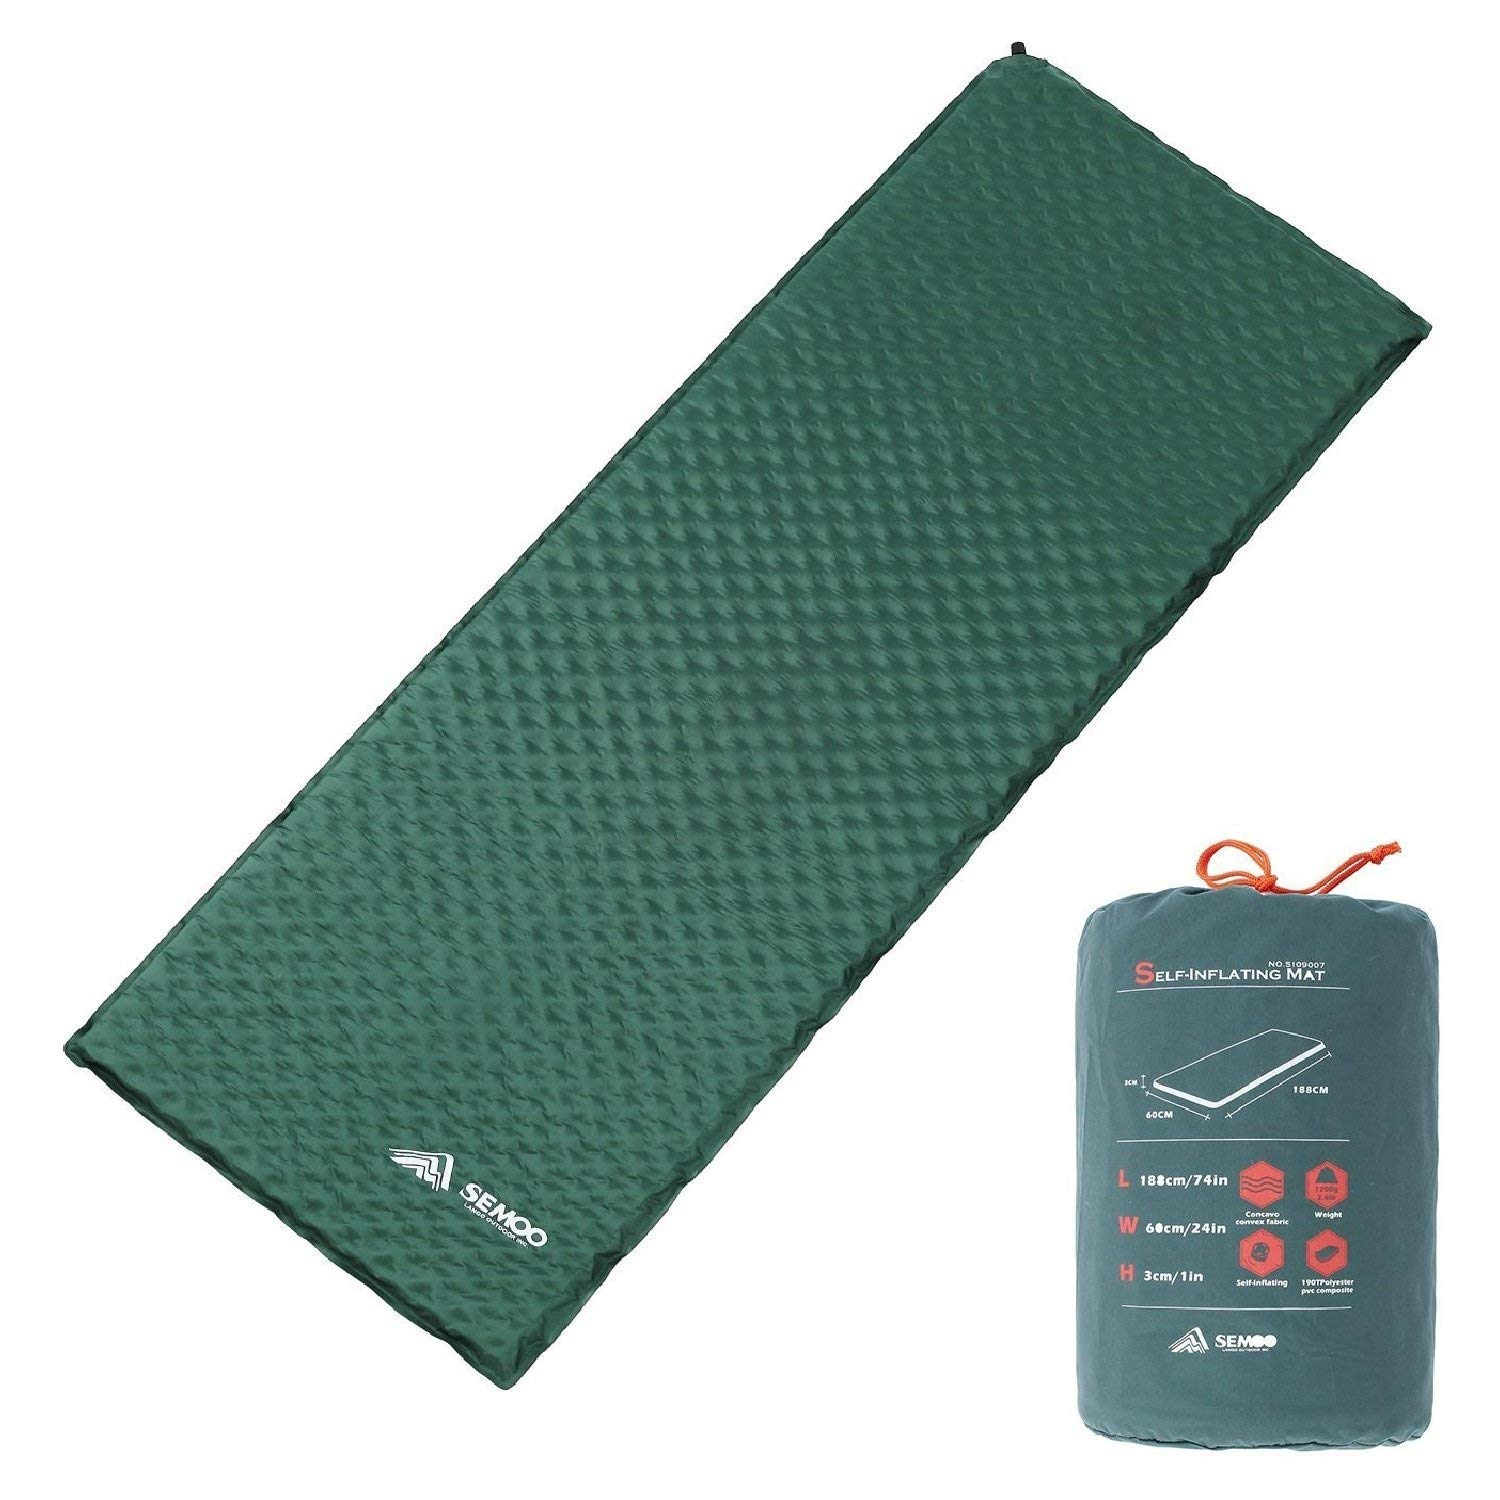 SEMOO Self-Inflating Camping Sleeping Pads, Lightweight Water Repellent Coating Mat for Hiking by SEMOO